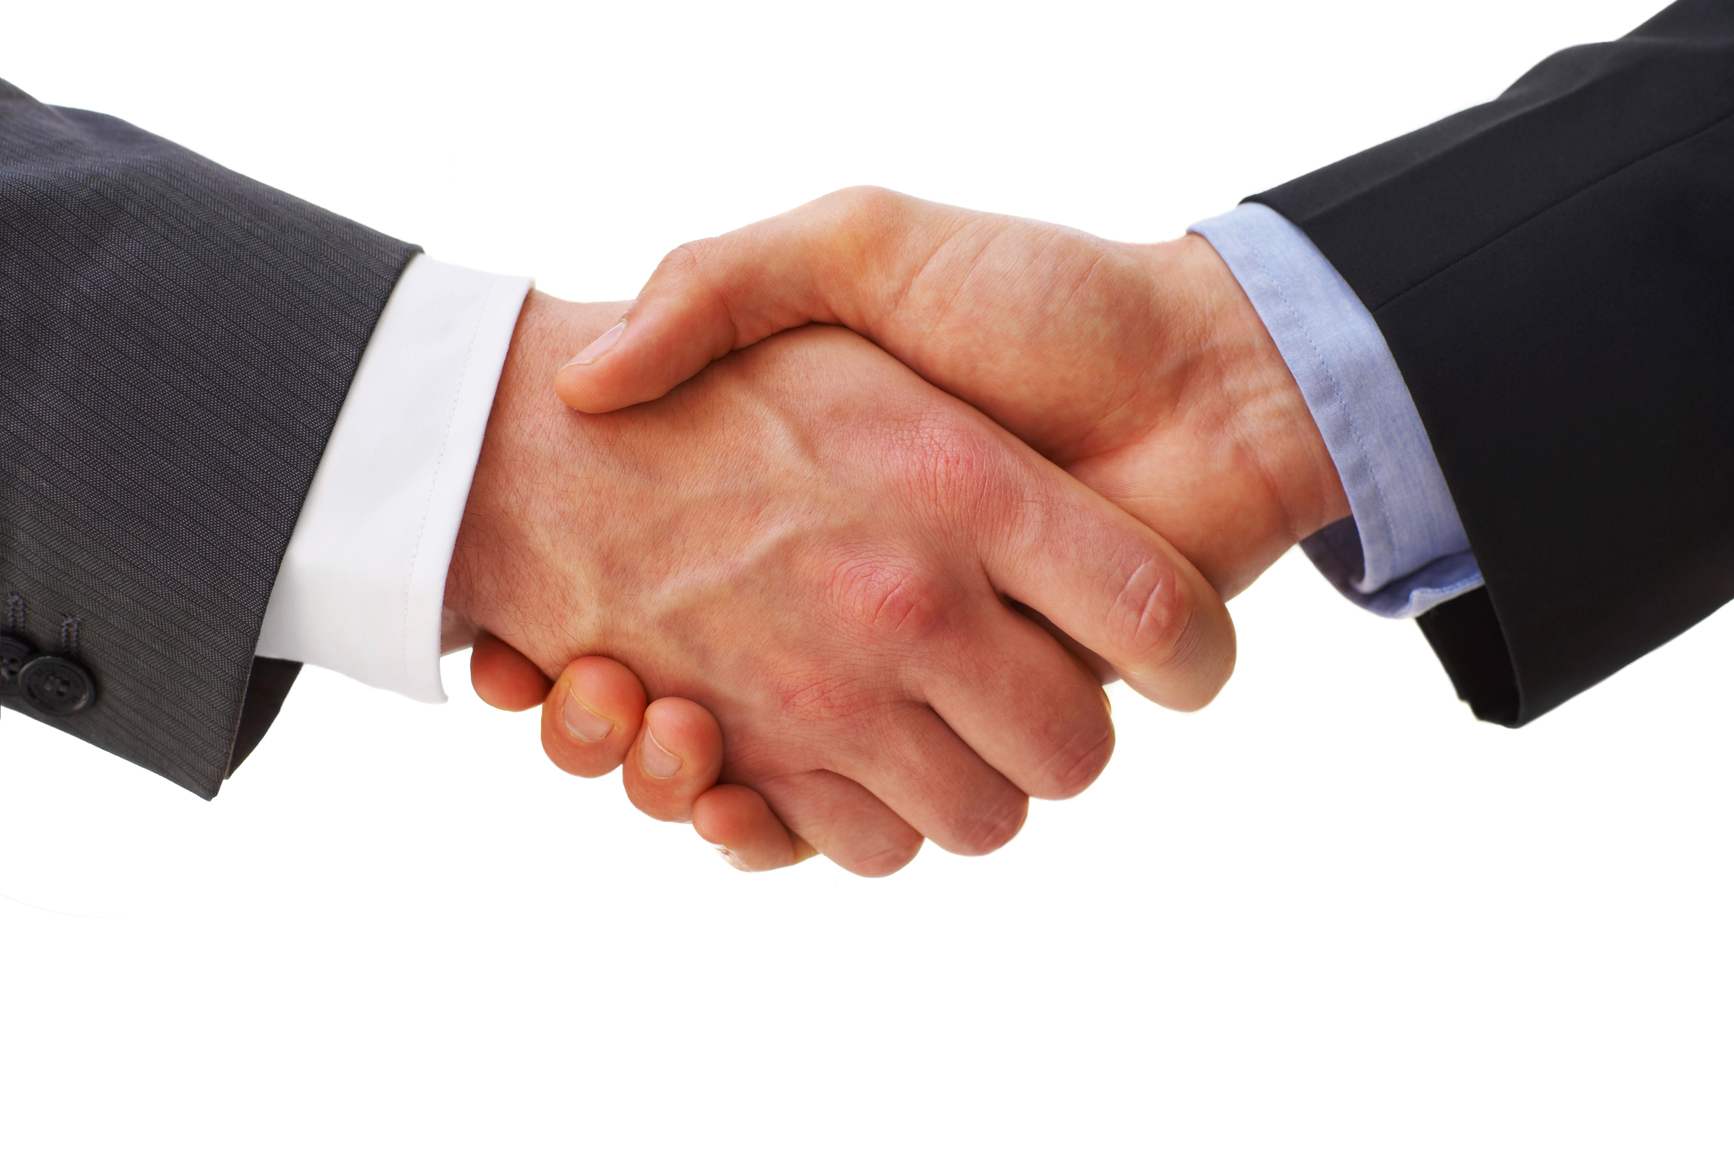 Handshake clipart executive agreement. People shaking hands png